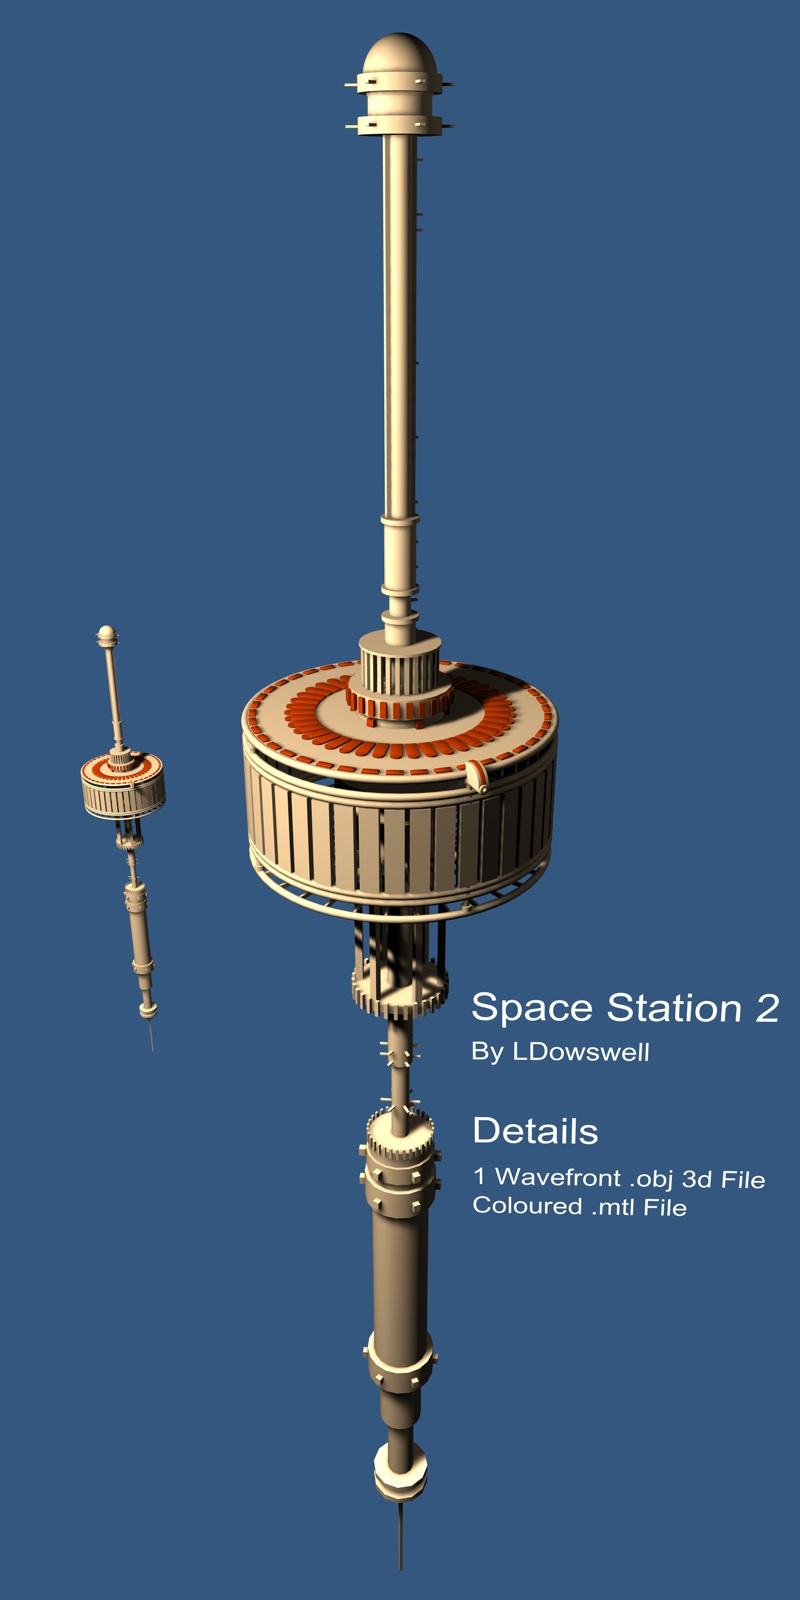 Space Station 2